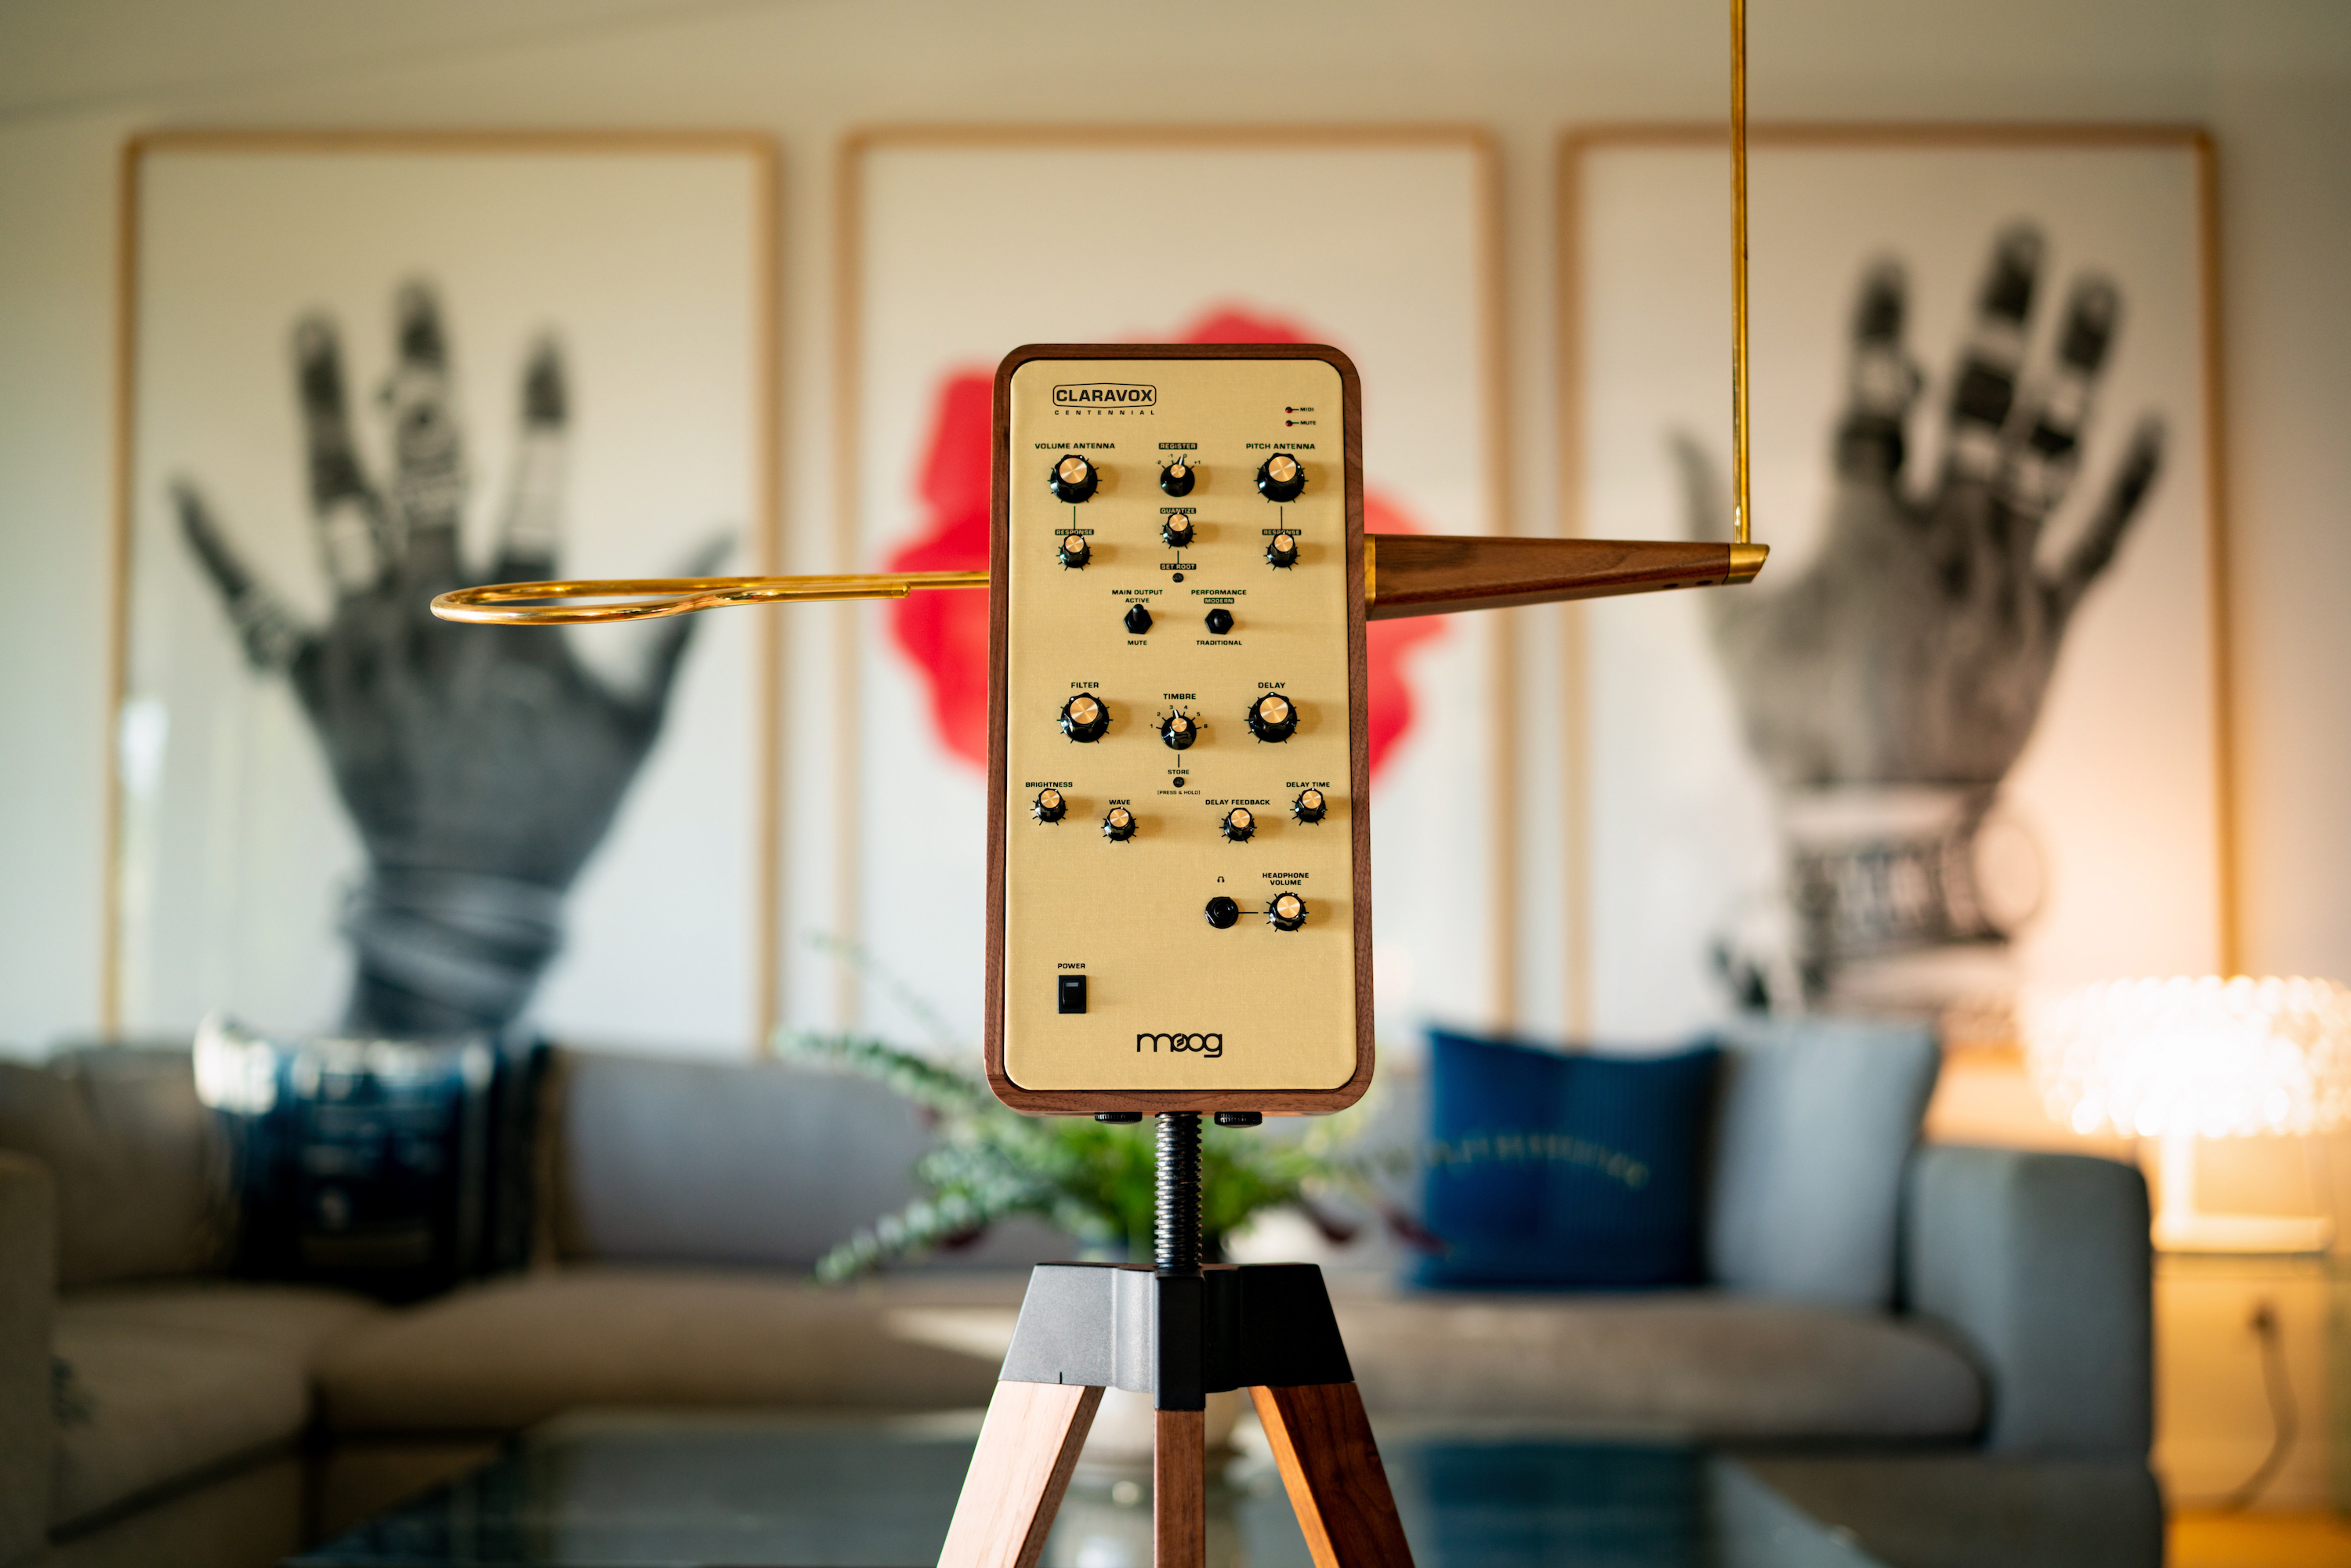 Photo of the Moog Claravox Centennial theremin in a living room.